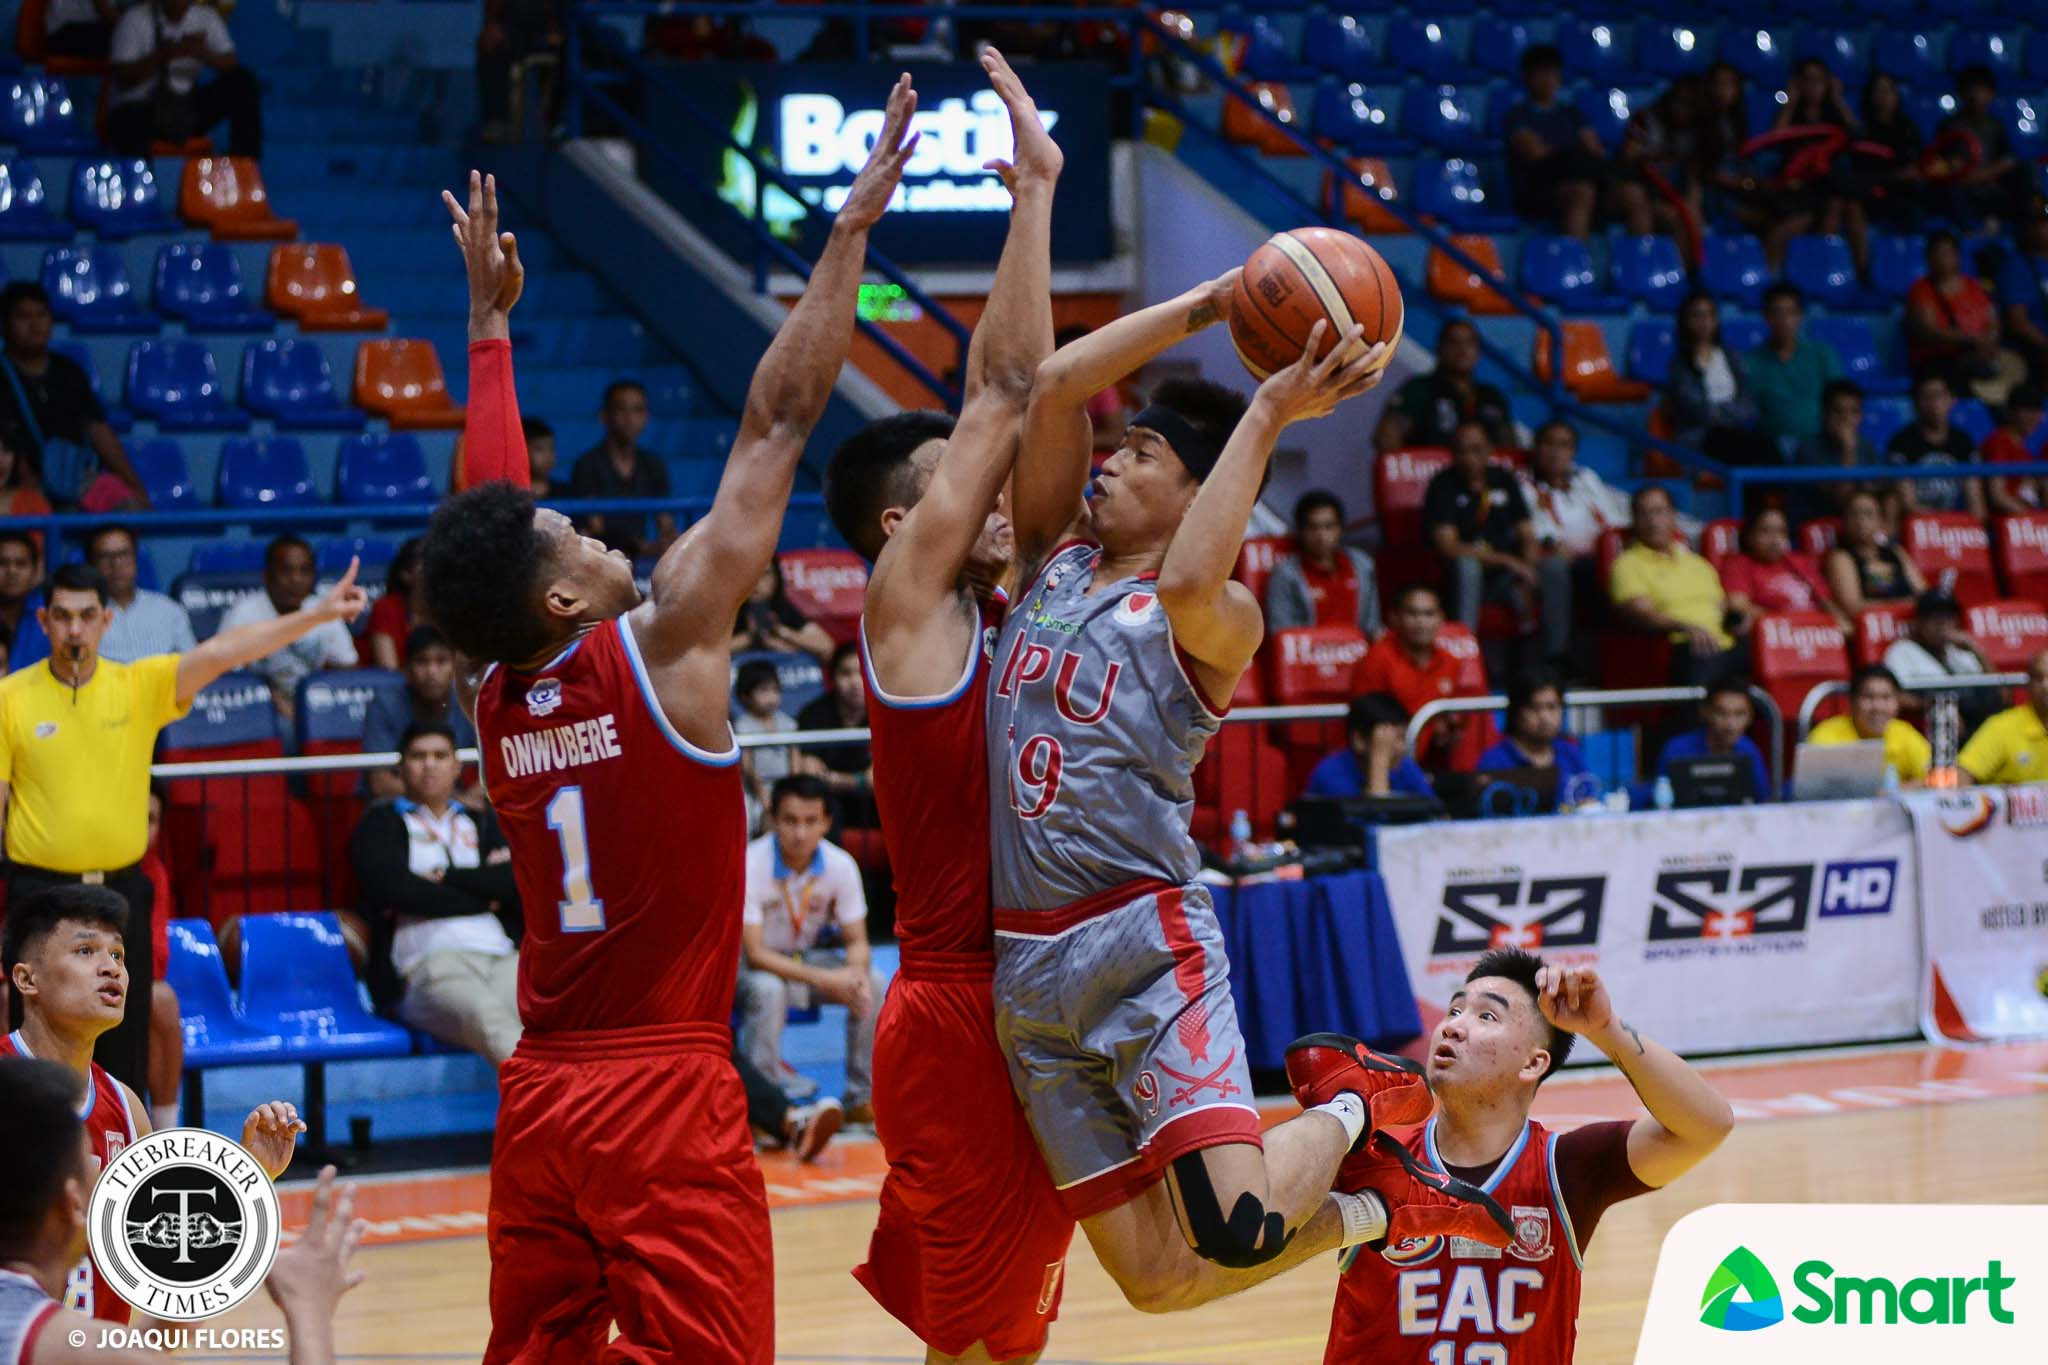 Tiebreaker Times Marcelino twins close out EAC as Lyceum goes to 14-0 Basketball EAC LPU NCAA News  Topex Robinson Sidney Onwubere NCAA Season 93 Seniors Basketball NCAA Season 93 MJ Ayaay Lyceum Seniors Basketball Jerome Garcia Jayvee Marcelino Jaycee Marcelino EAC Seniors Basketball CJ Perez